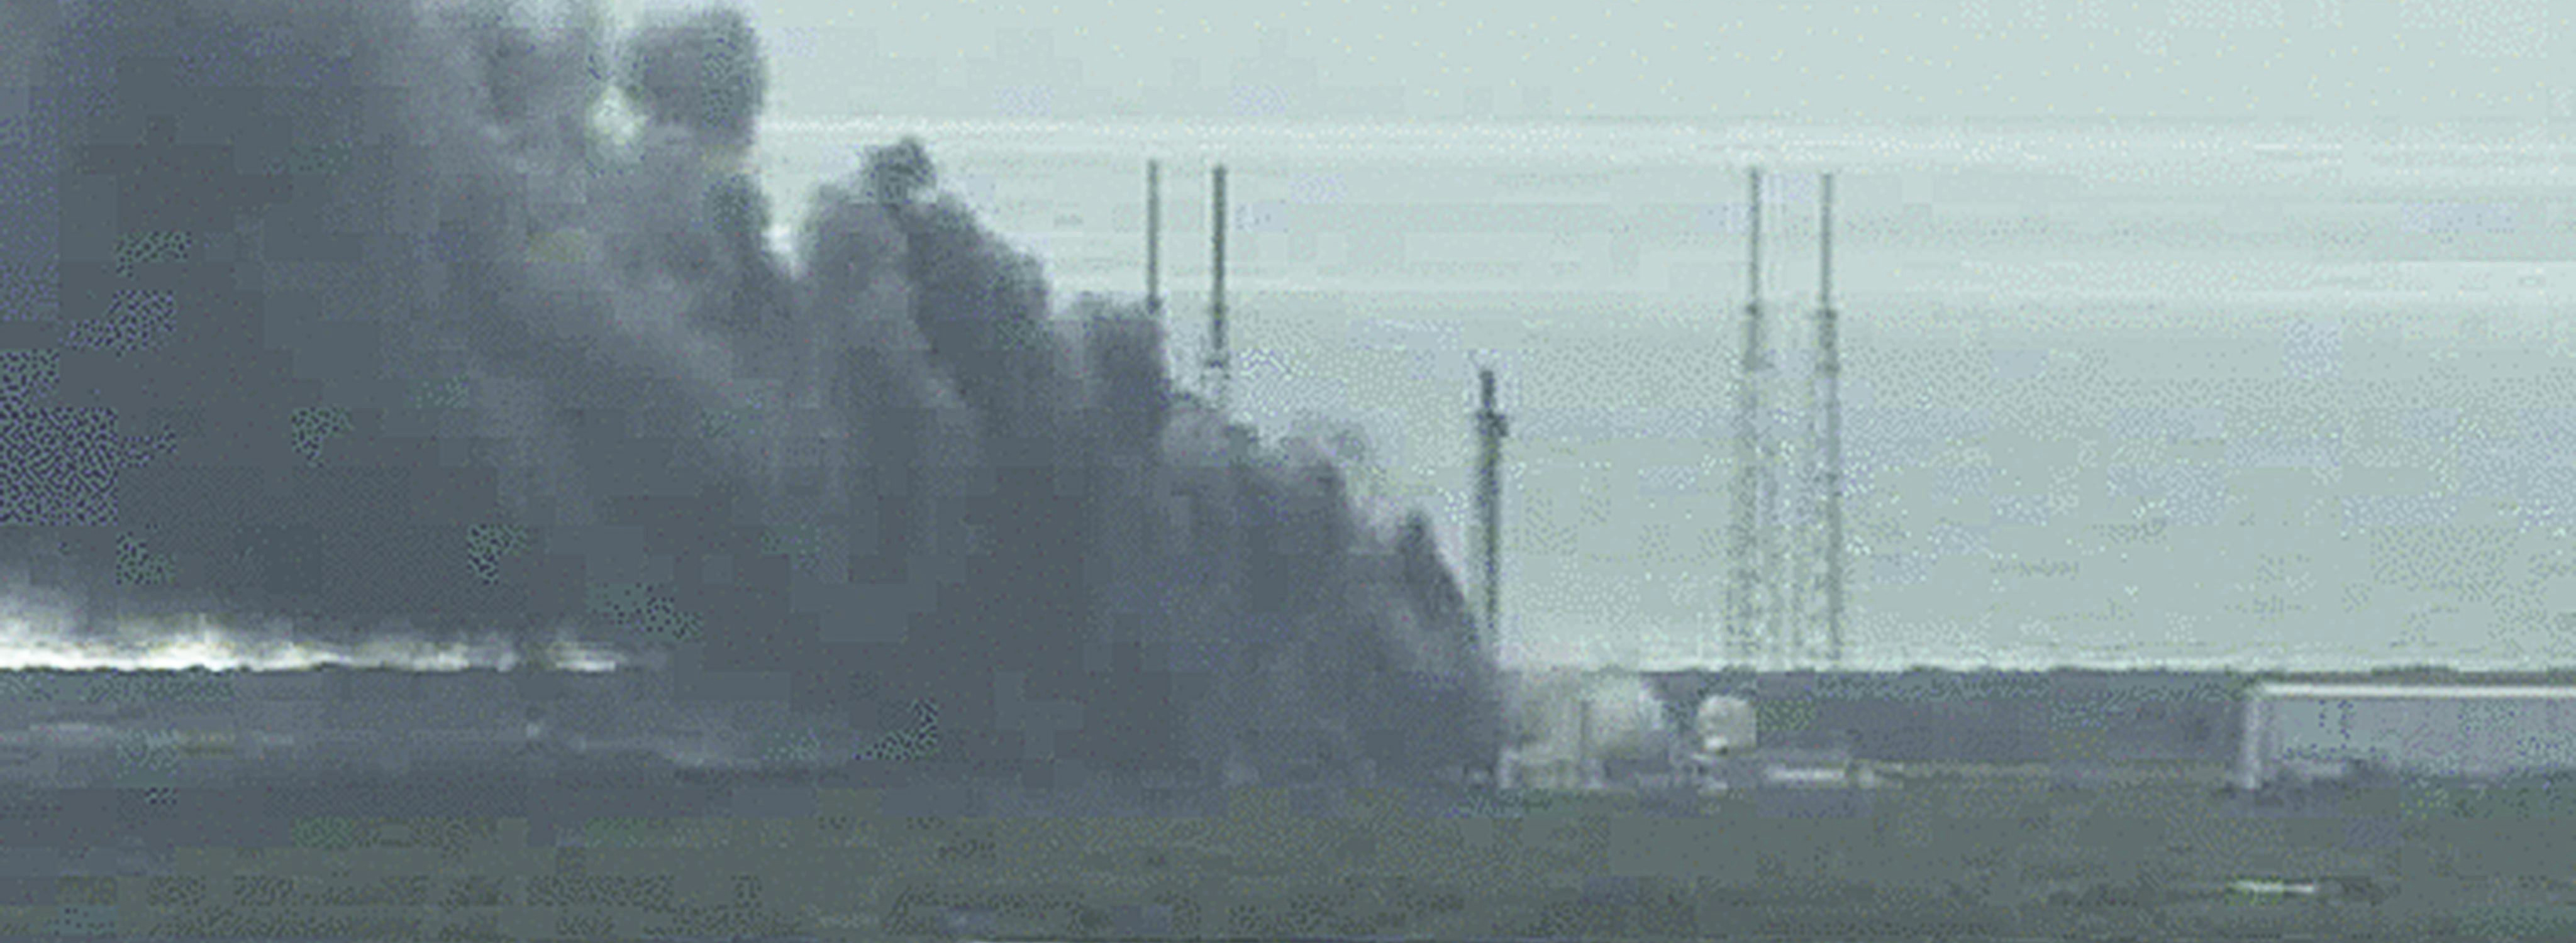 SpaceX rocket explodes on launch pad at Cape Canaveral